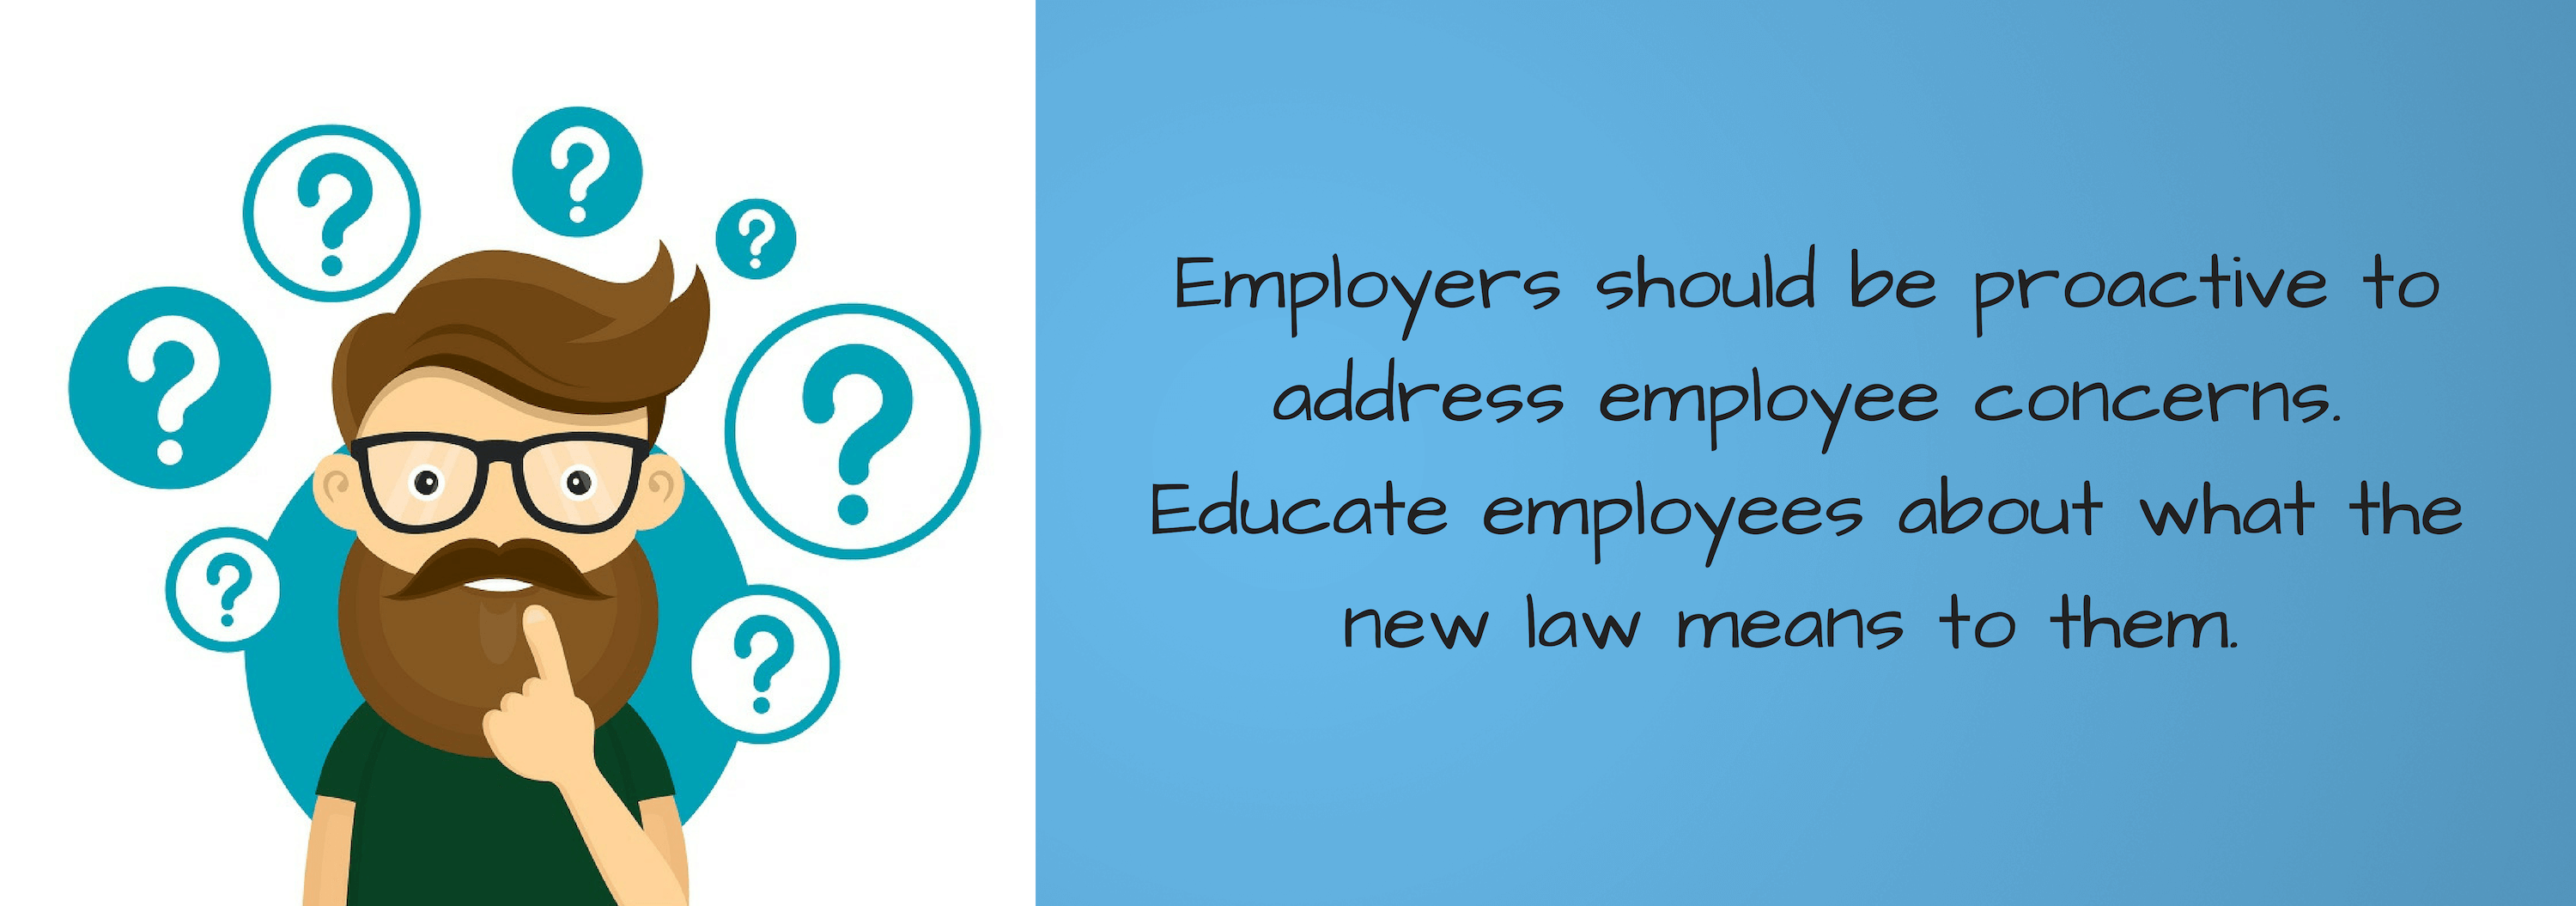 Employers should communicate and educate employees about Union due changes infographic